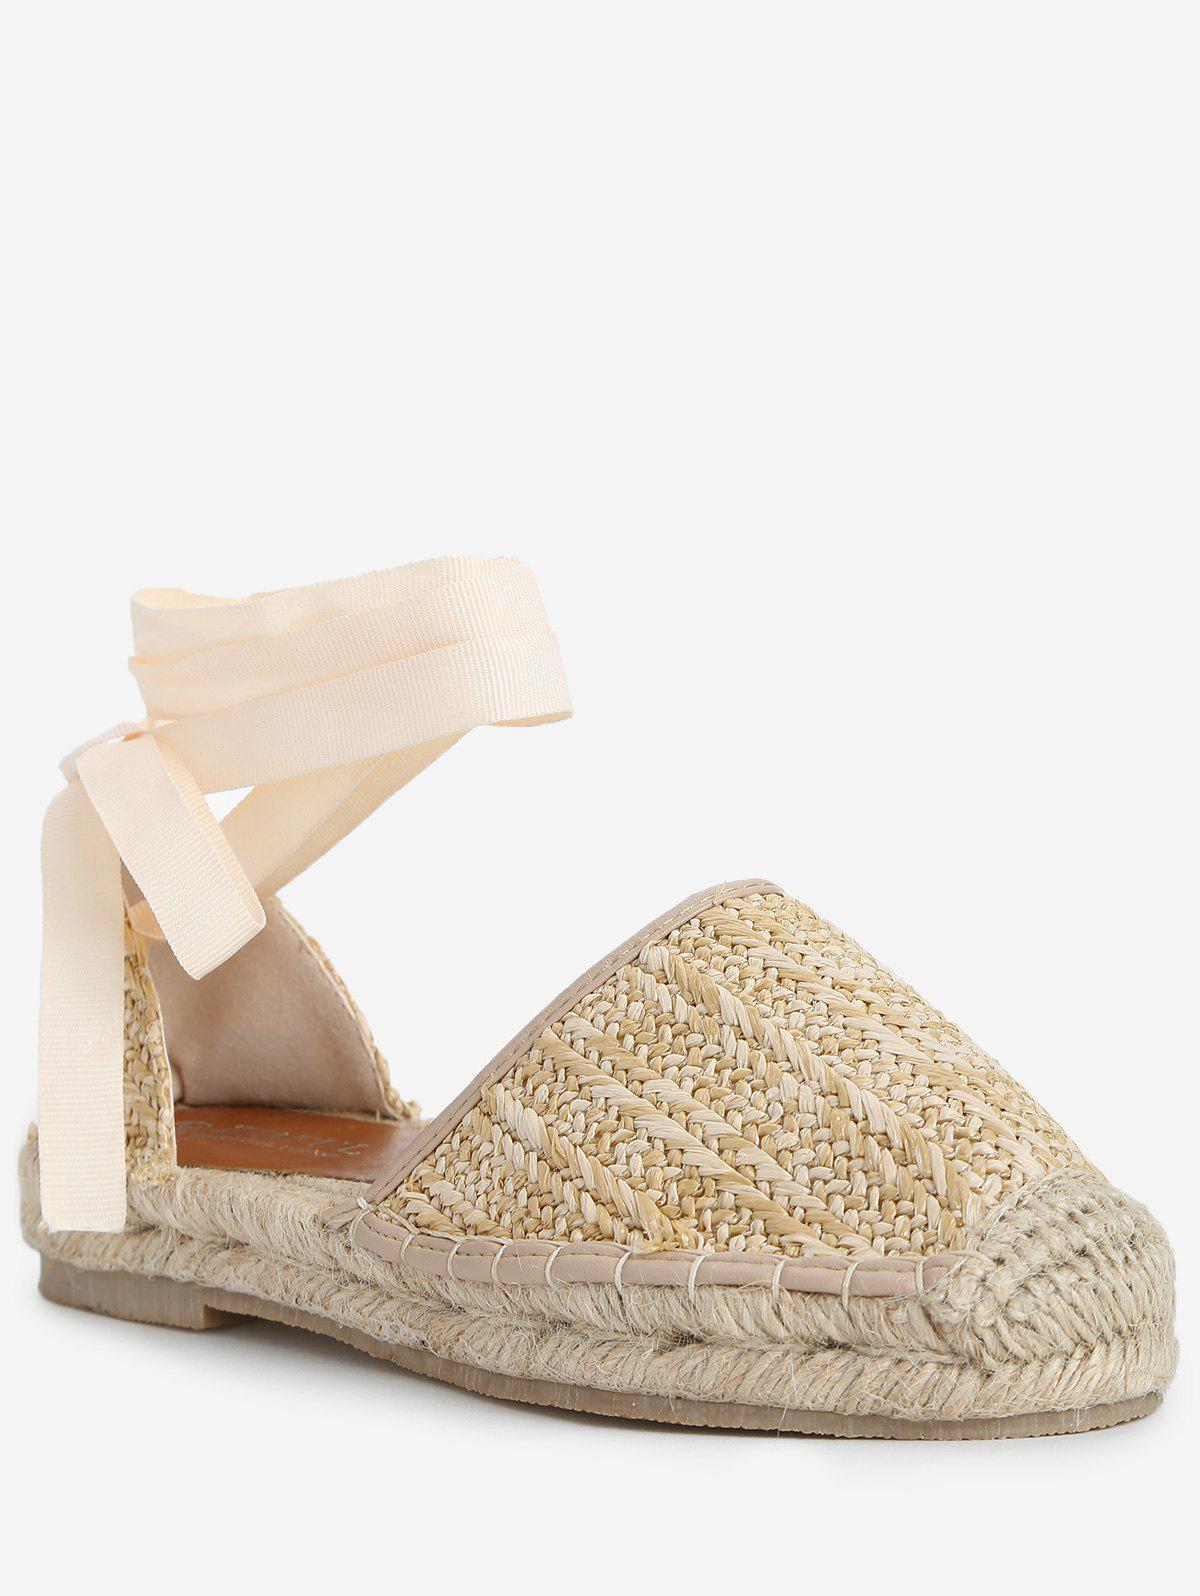 New Low Heel Espadrille Straw Fisherman Sandals